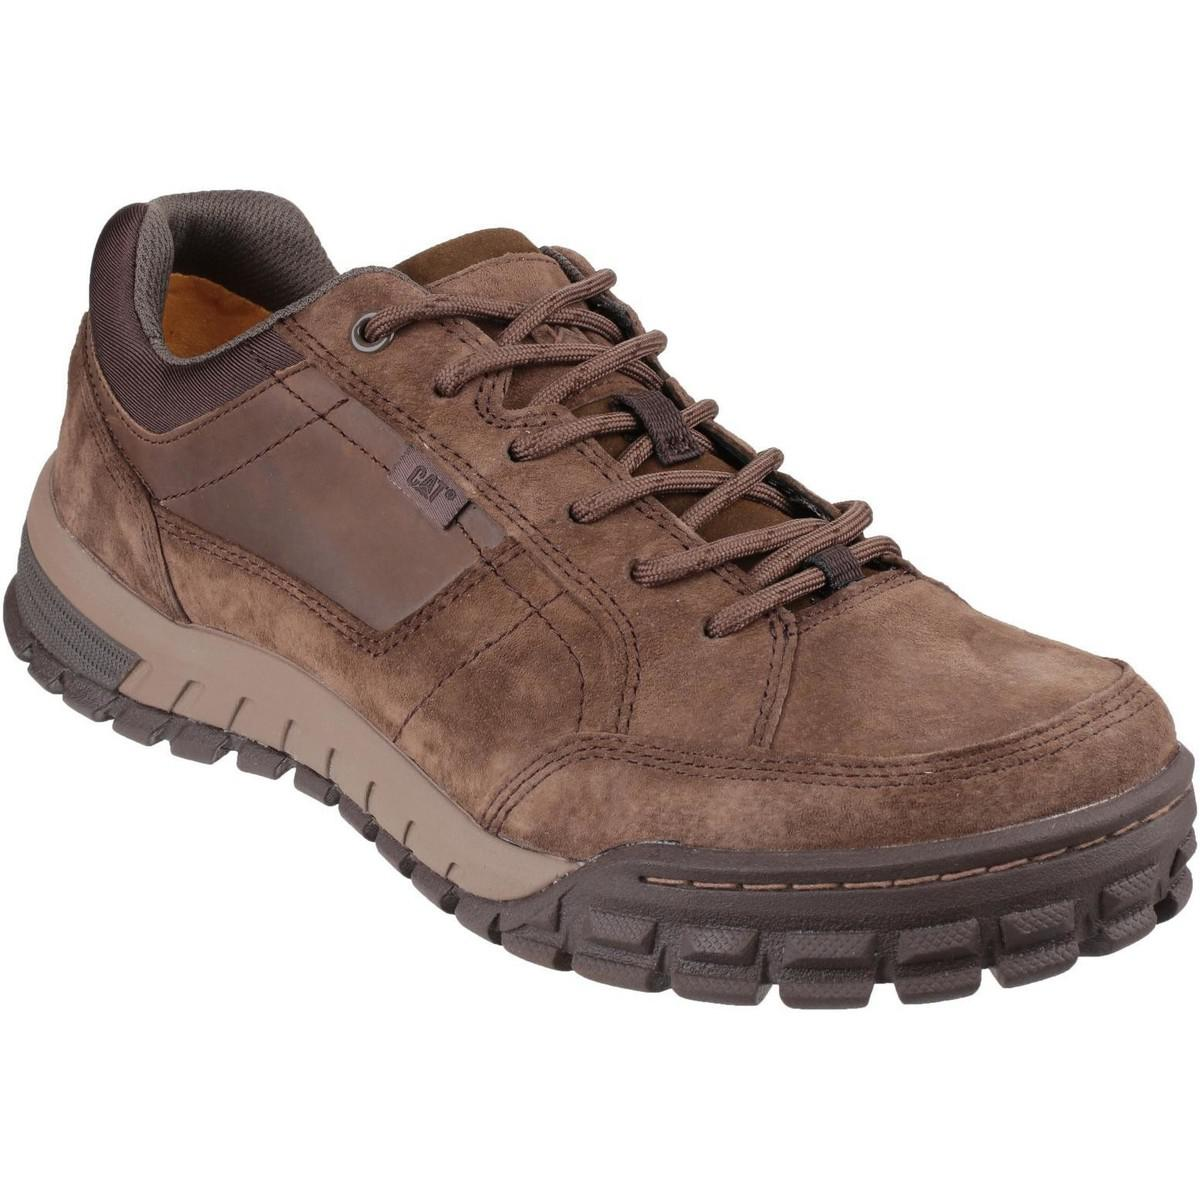 22a78b5c73e Caterpillar Sentinel Men s Safety Boots In Other in Brown for Men - Lyst